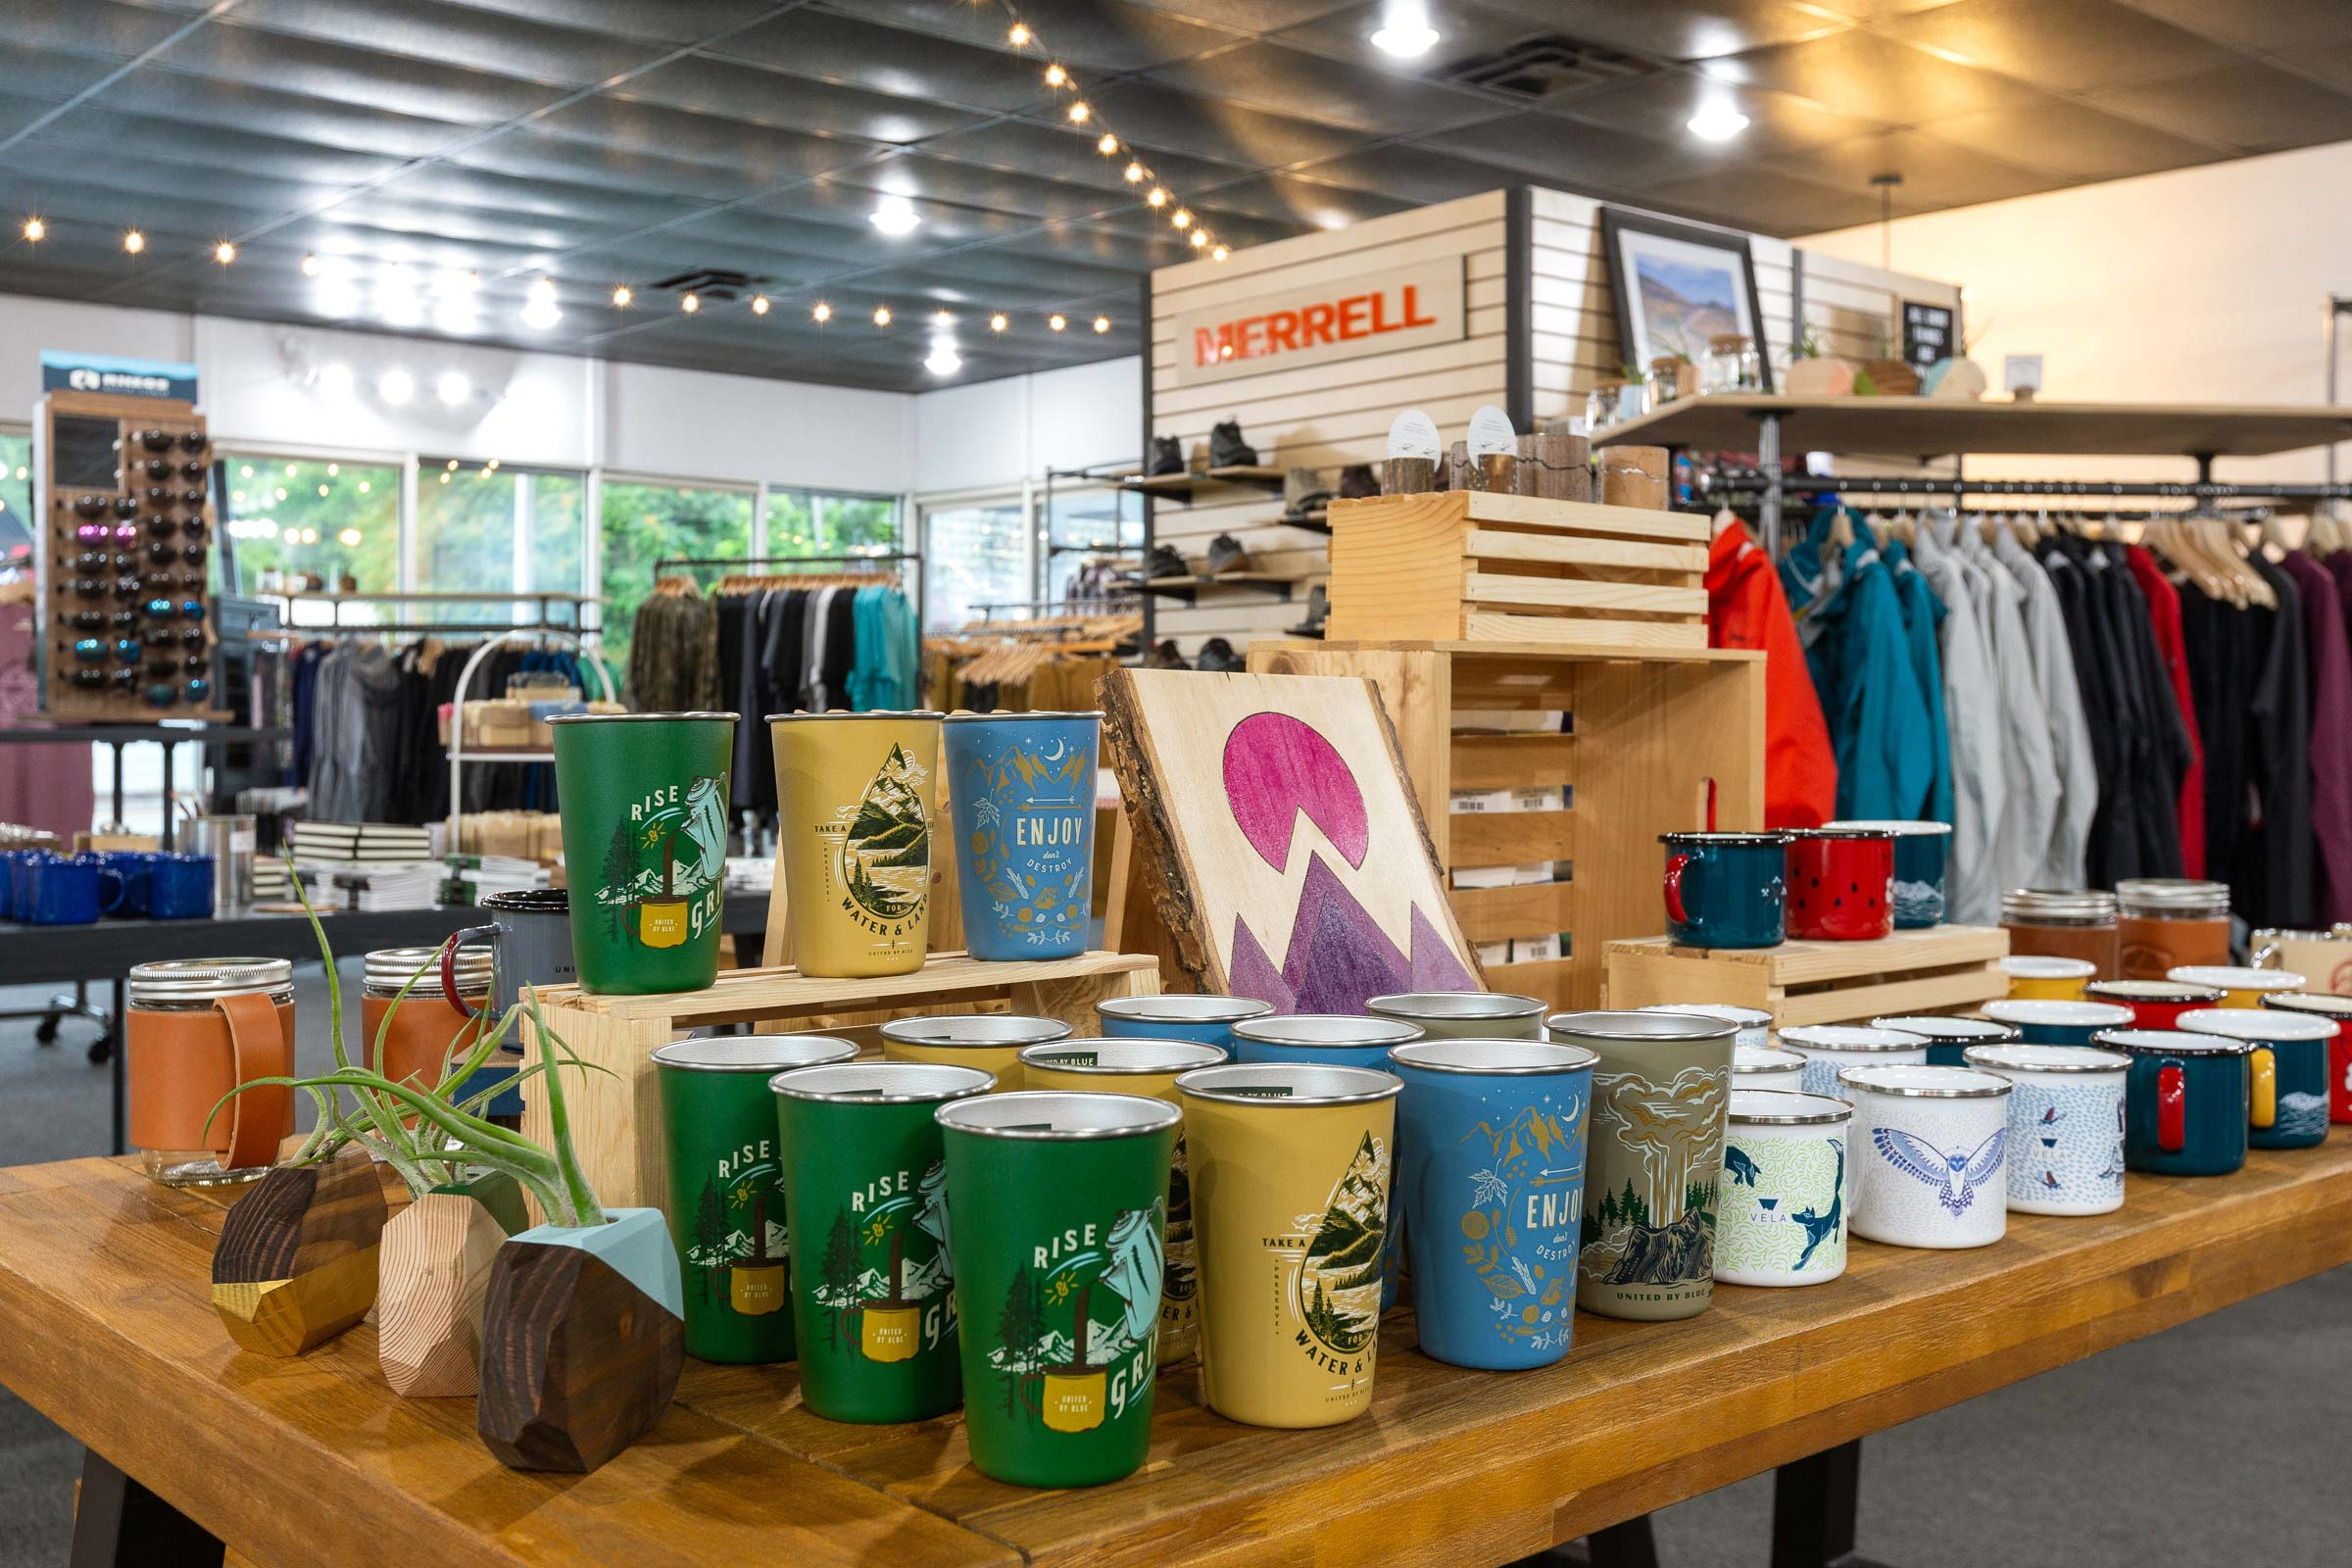 Trailful Outdoor Co is a hiking outfitter shop located near the Appalachian Trail in the North Georgia mountains